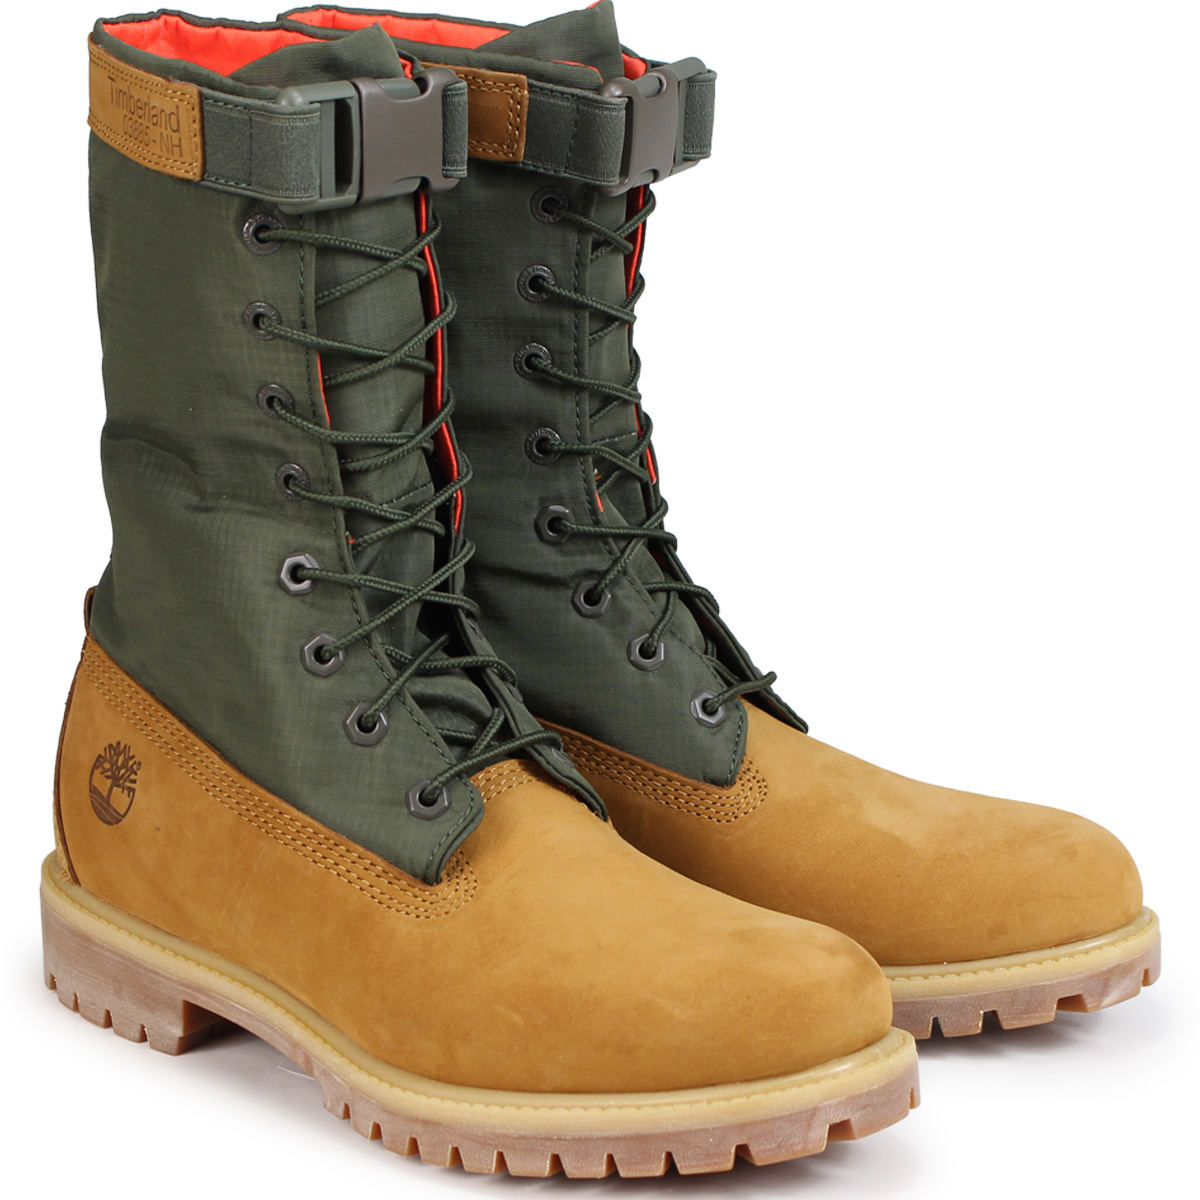 d63b738db22 6 inches of Timberland 6-INCH PREMIUM GAITER BOOTS Timberland boots men  A1QY8 W Wise dark green